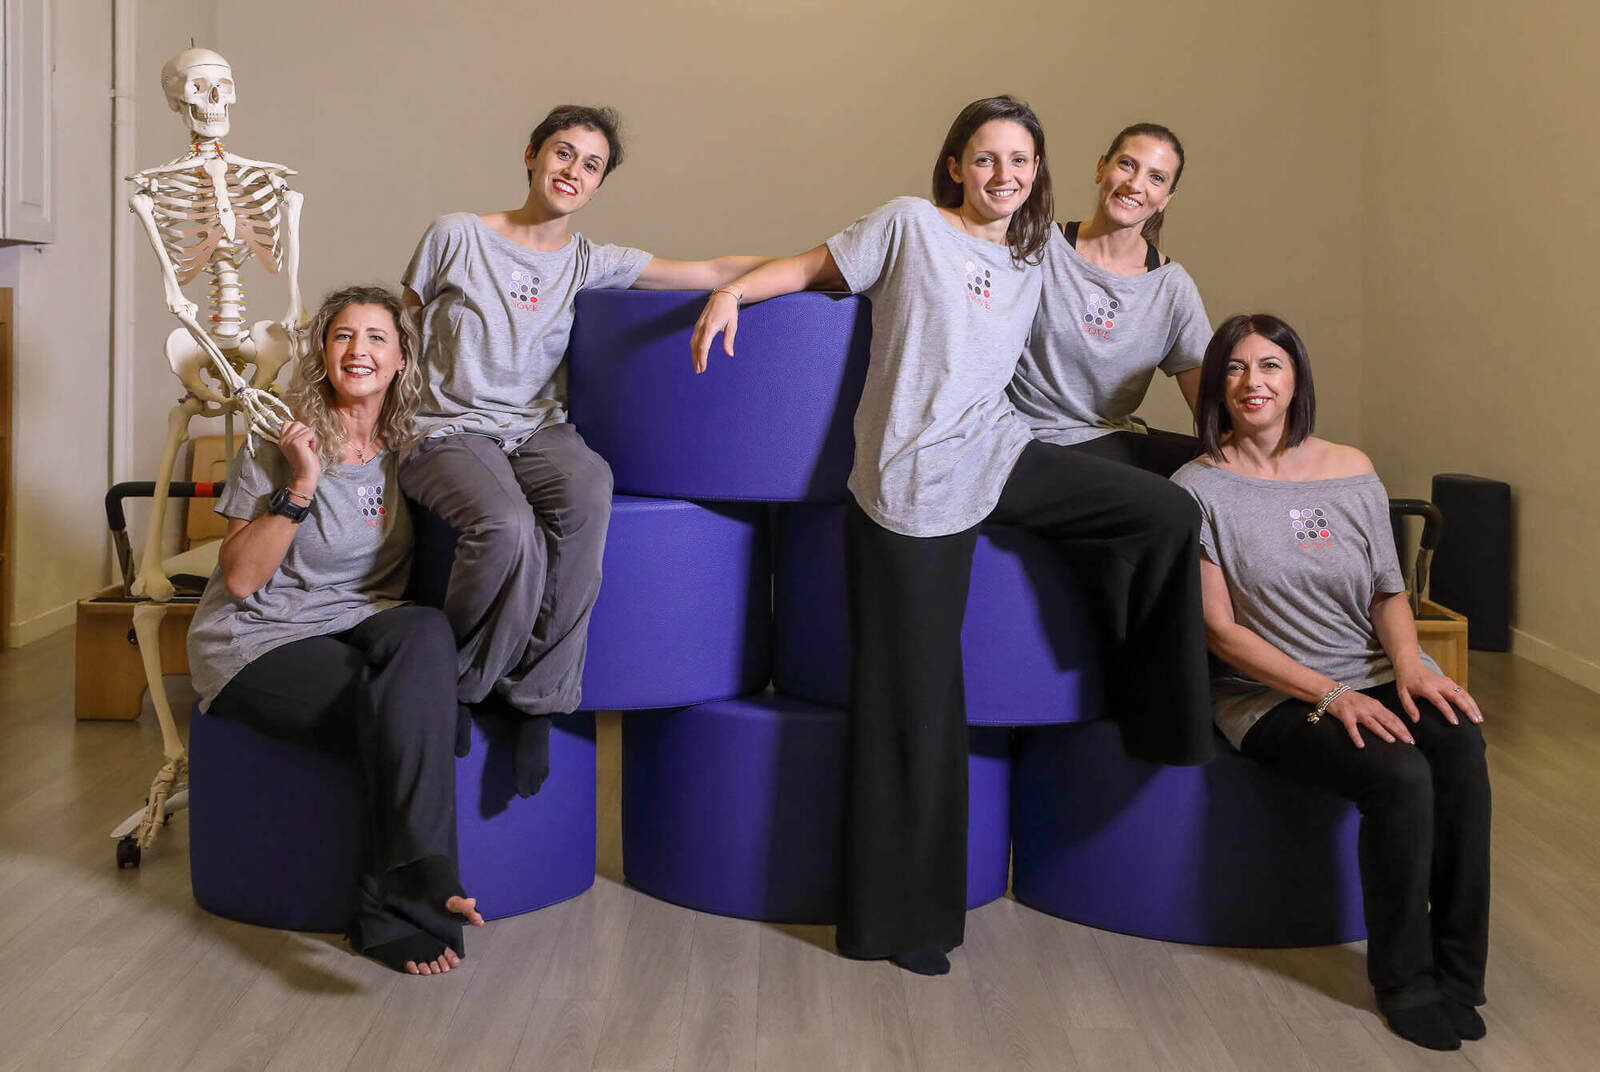 group portrait of pilates trainers